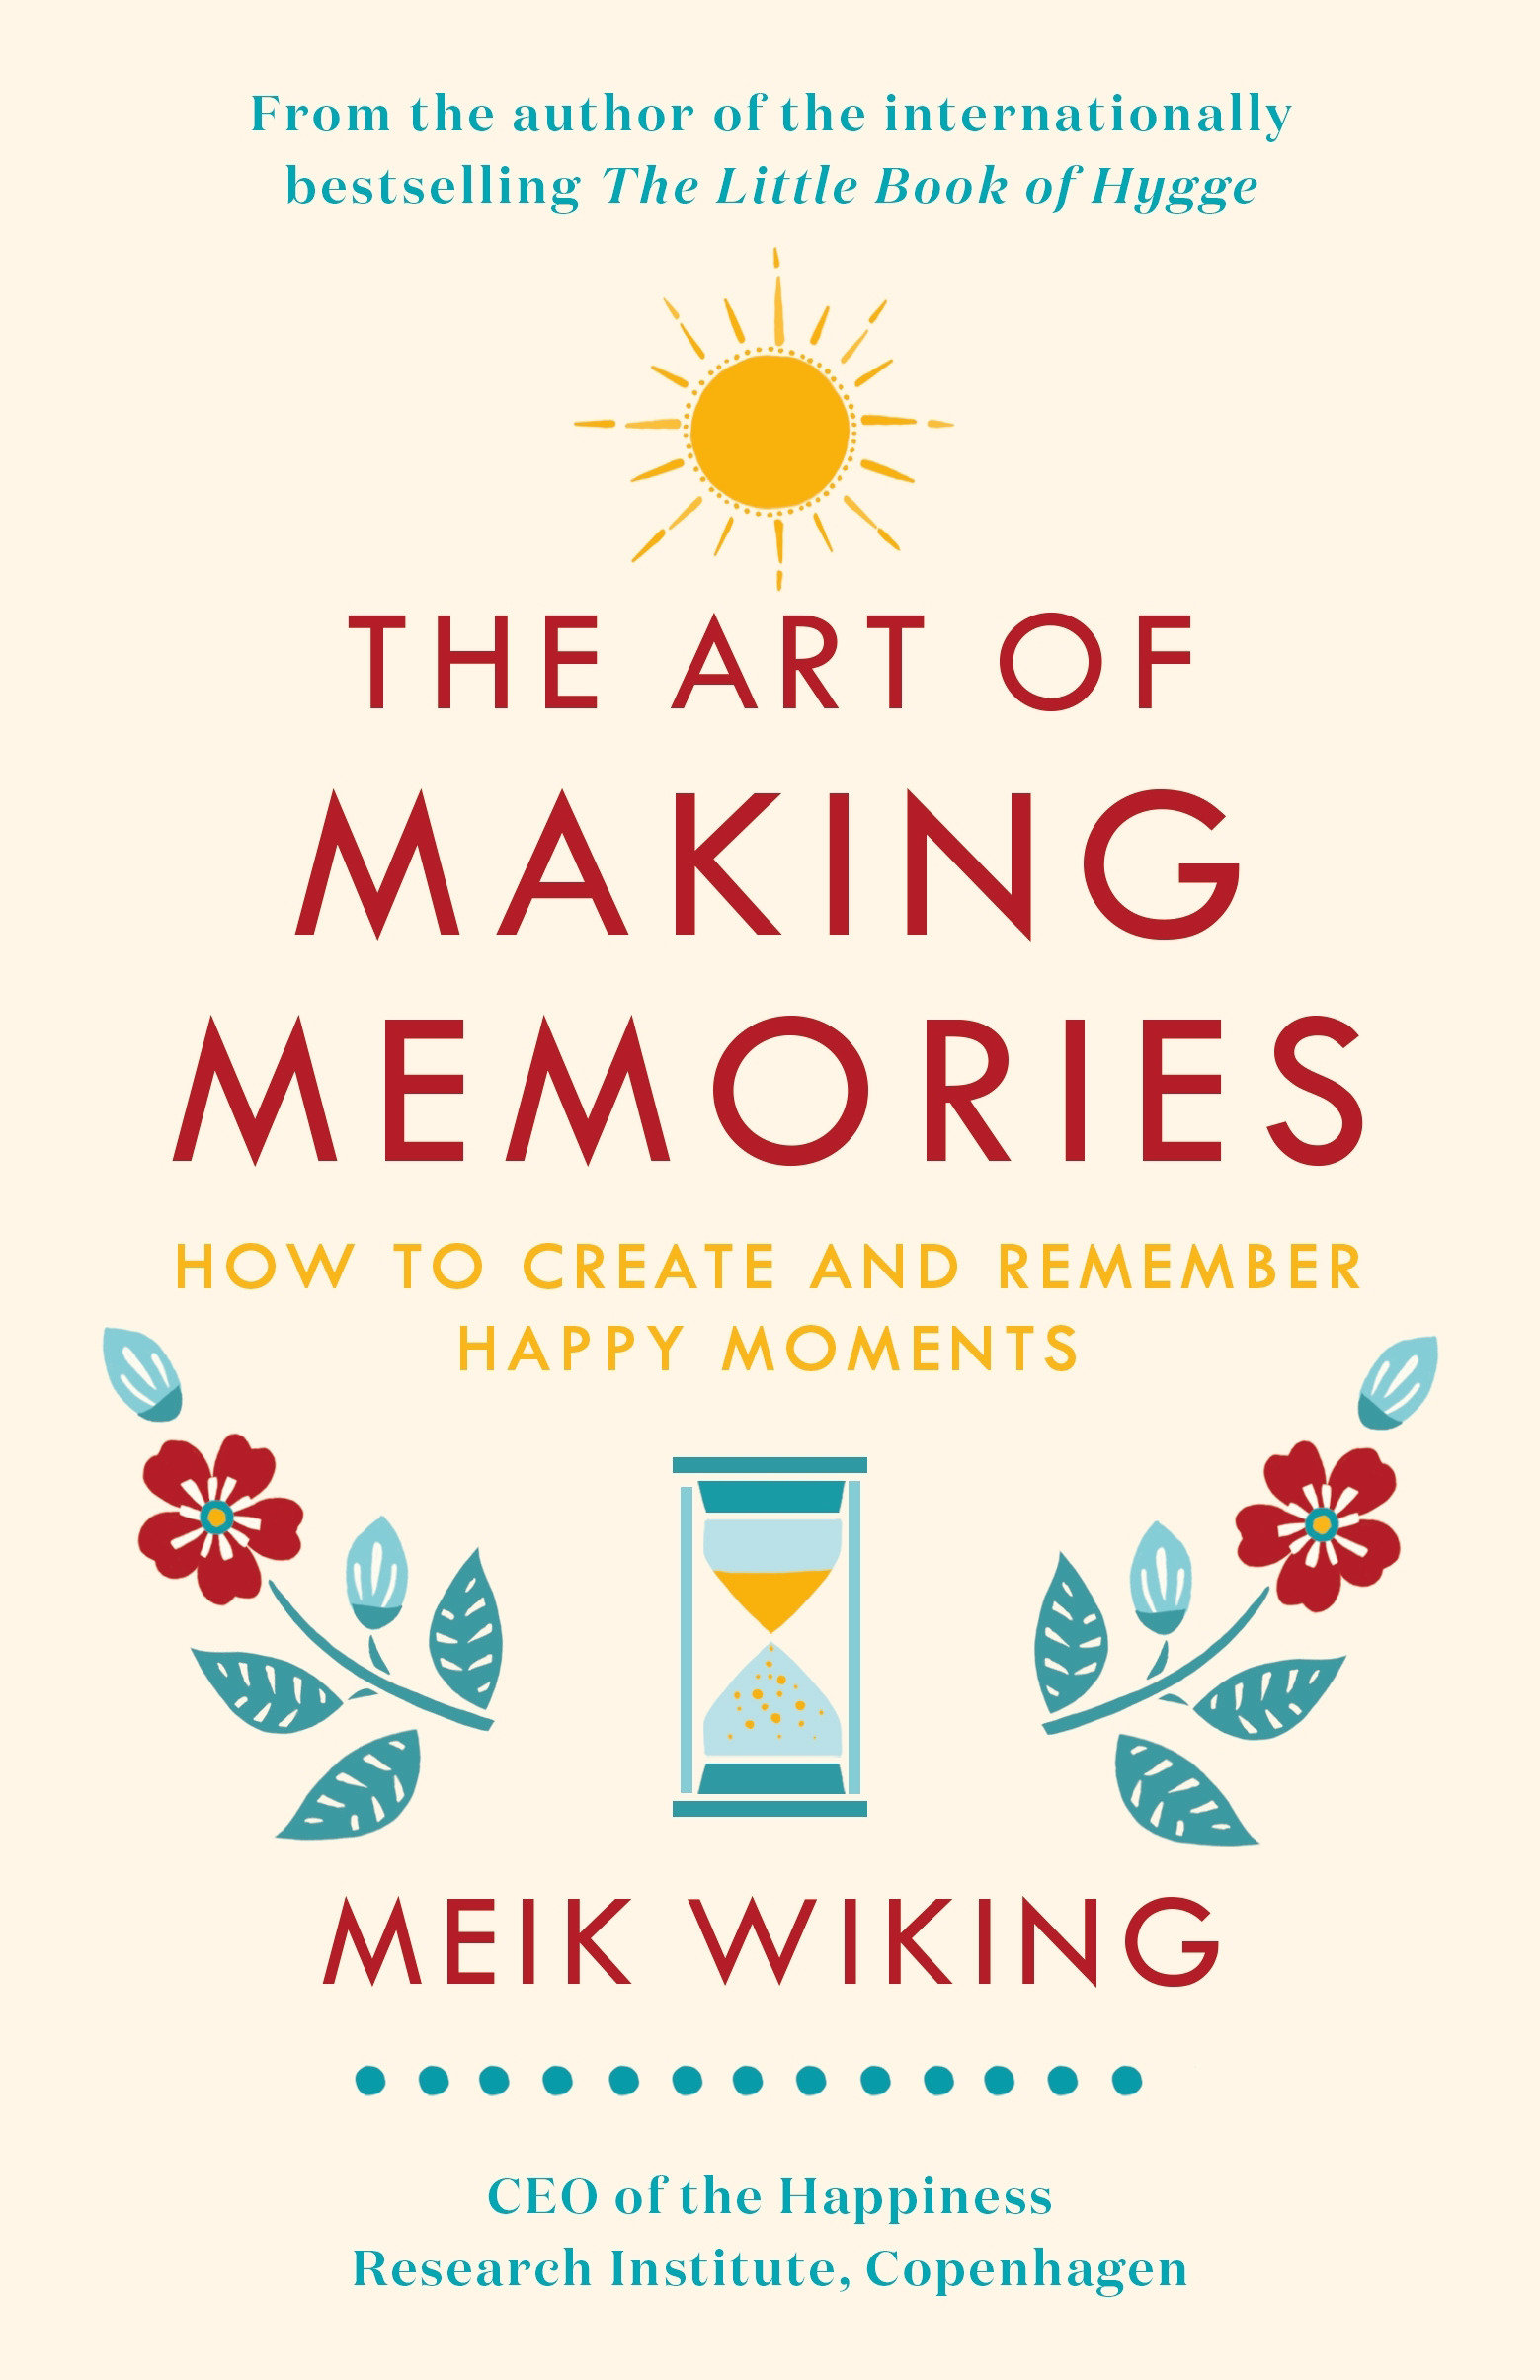 The Art of Making Memories How to Create and Remember Happy Moments